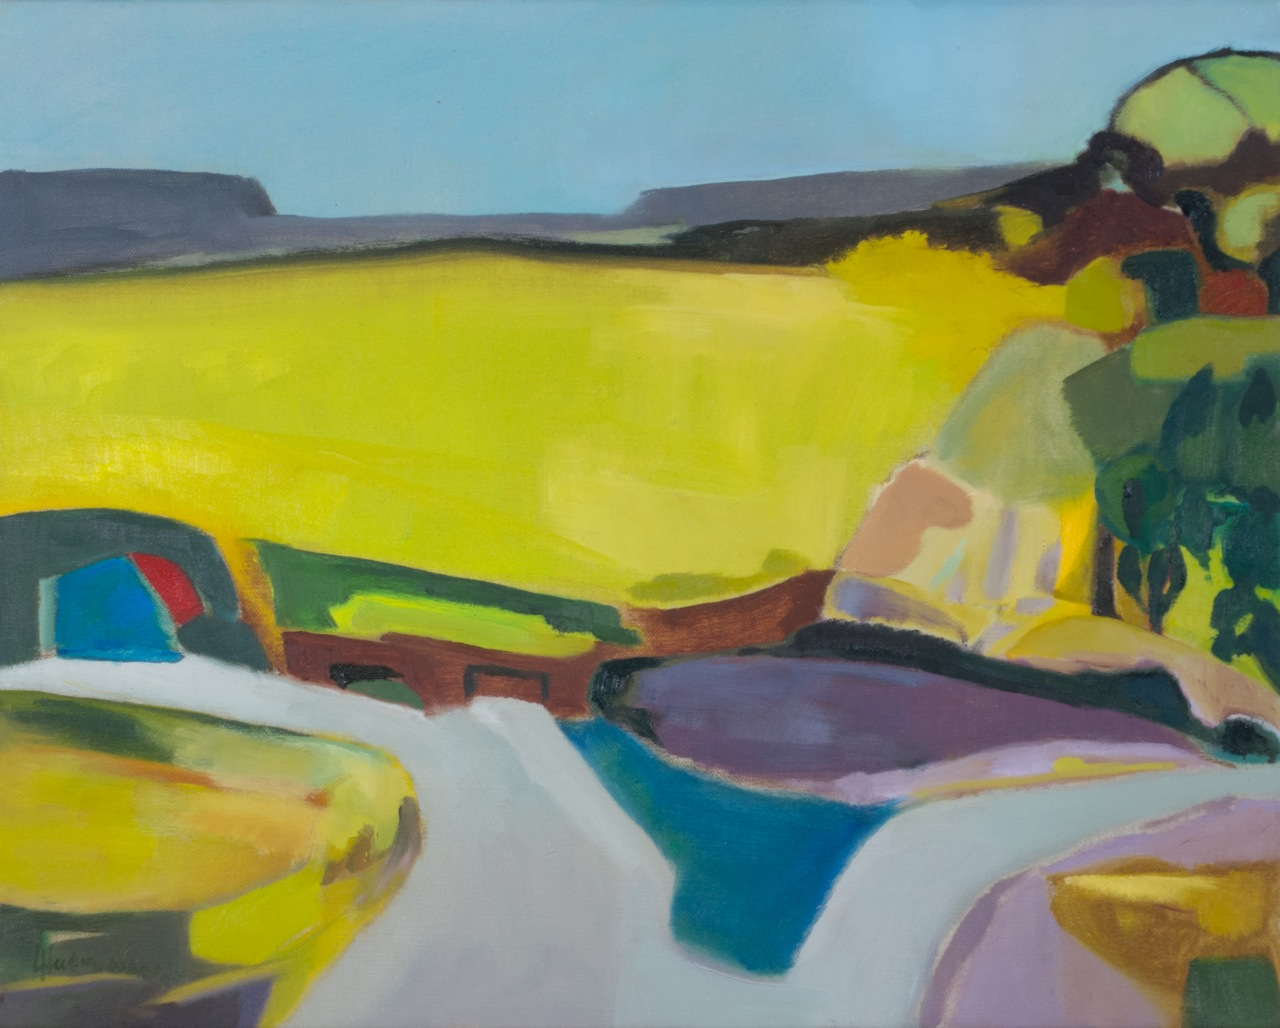 Headland Hartland, Loosestrife  [50x40cm] oil on linen, Laura Hudson 2013